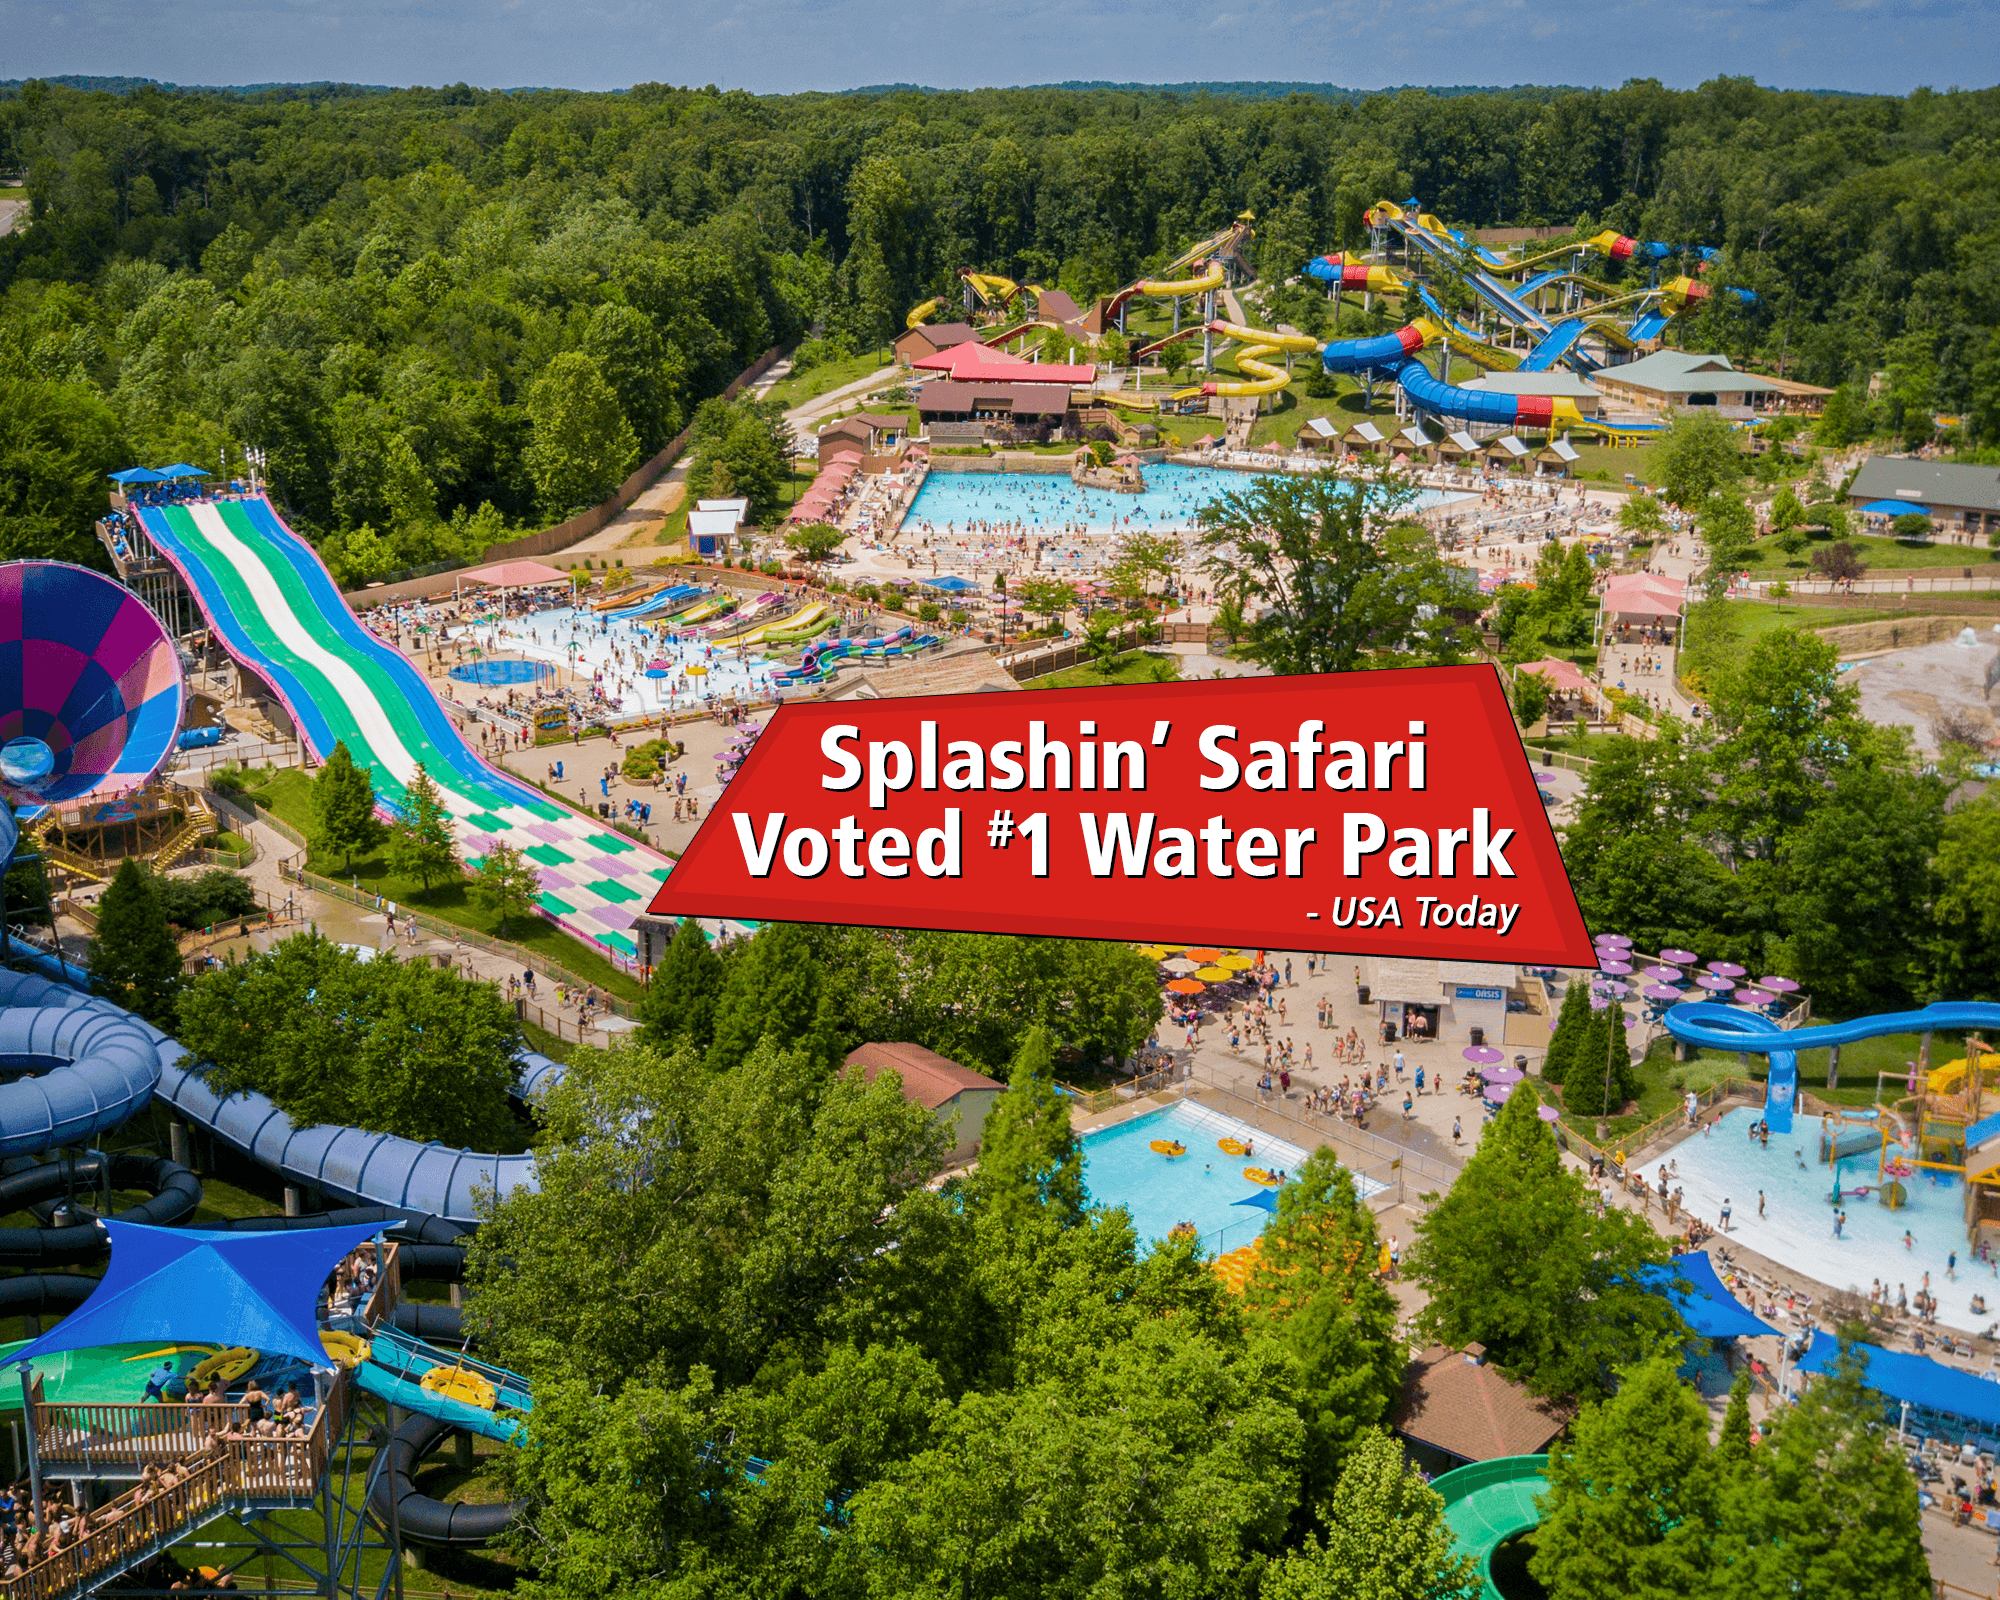 Splashin' Safari - Voted #1 Water Park!